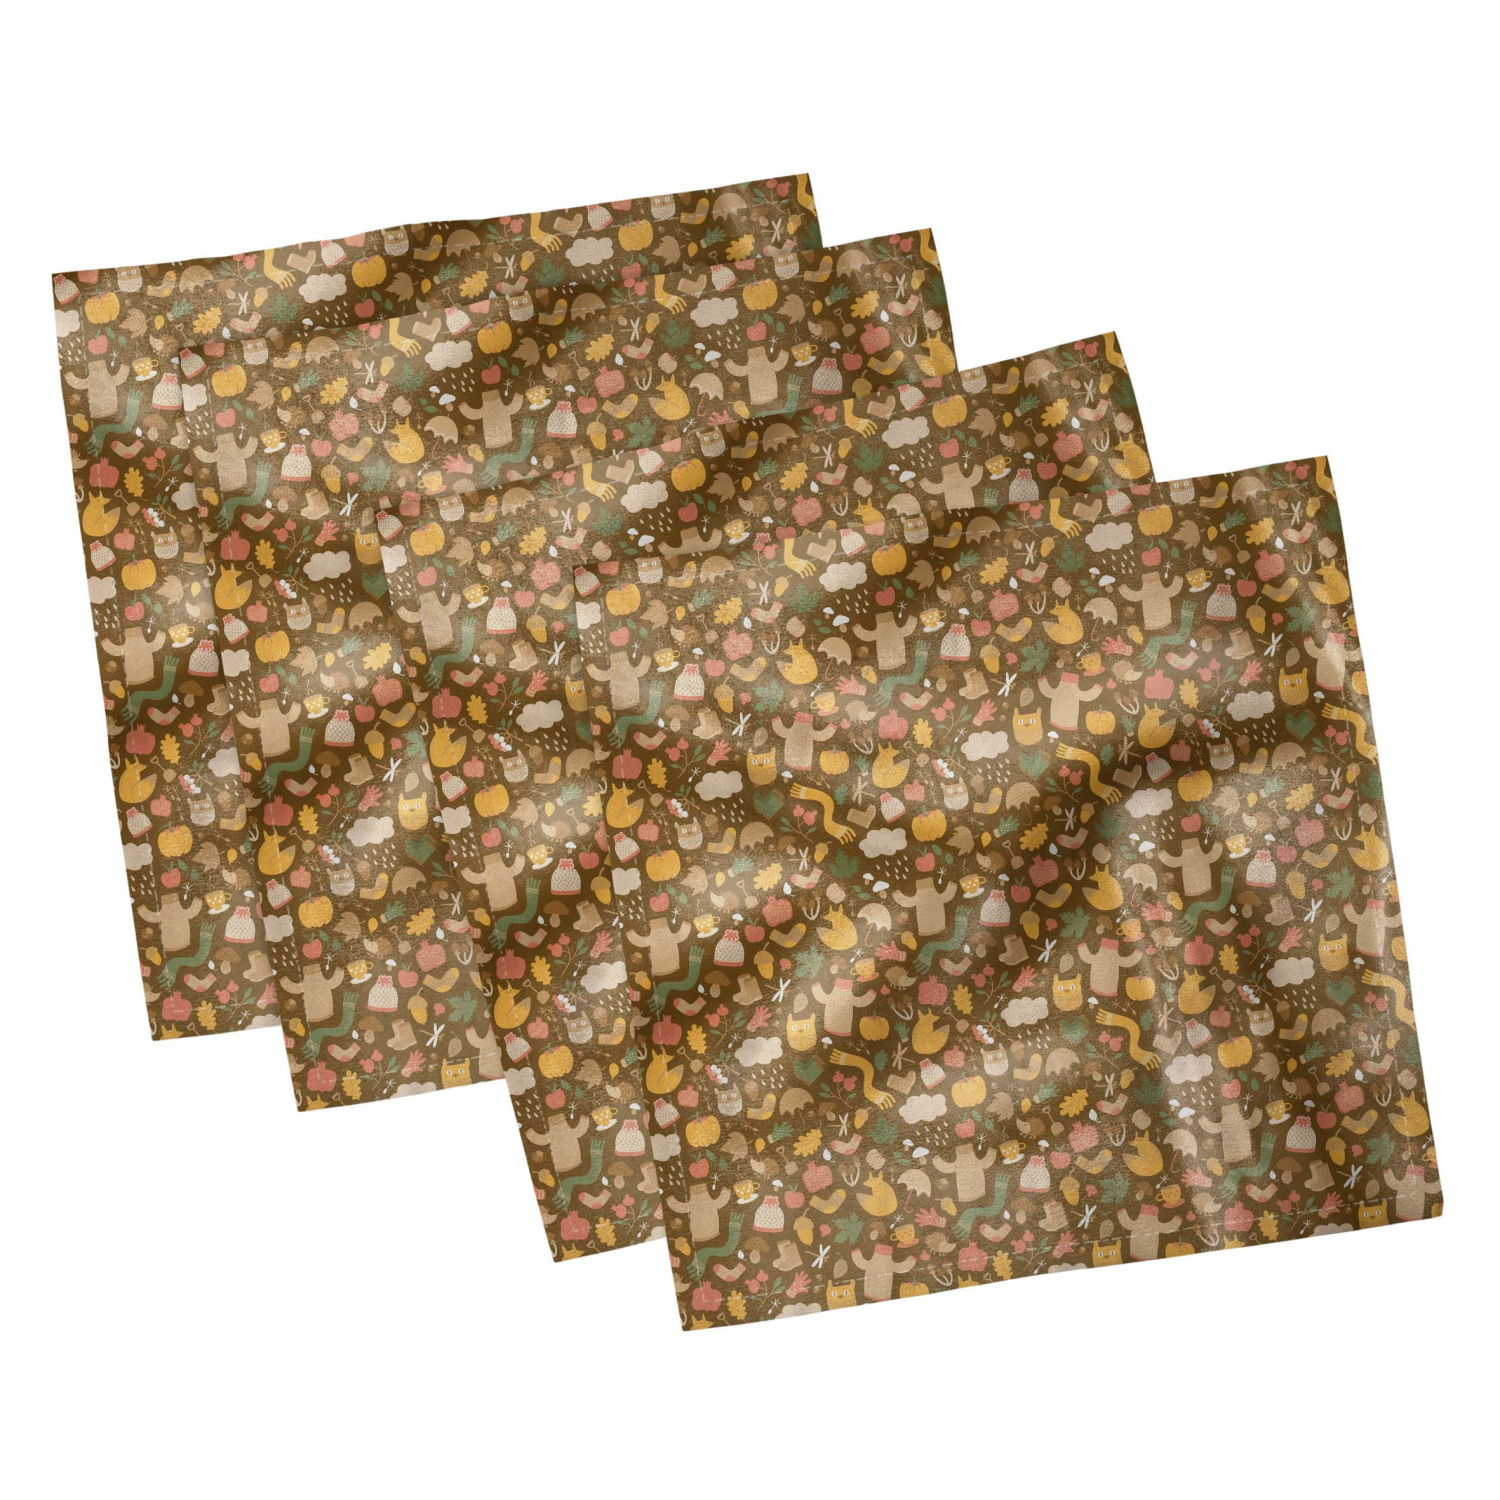 thumbnail 41 - Ambesonne-Autumn-Fall-Decorative-Satin-Napkins-Set-of-4-Party-Dinner-Fabric